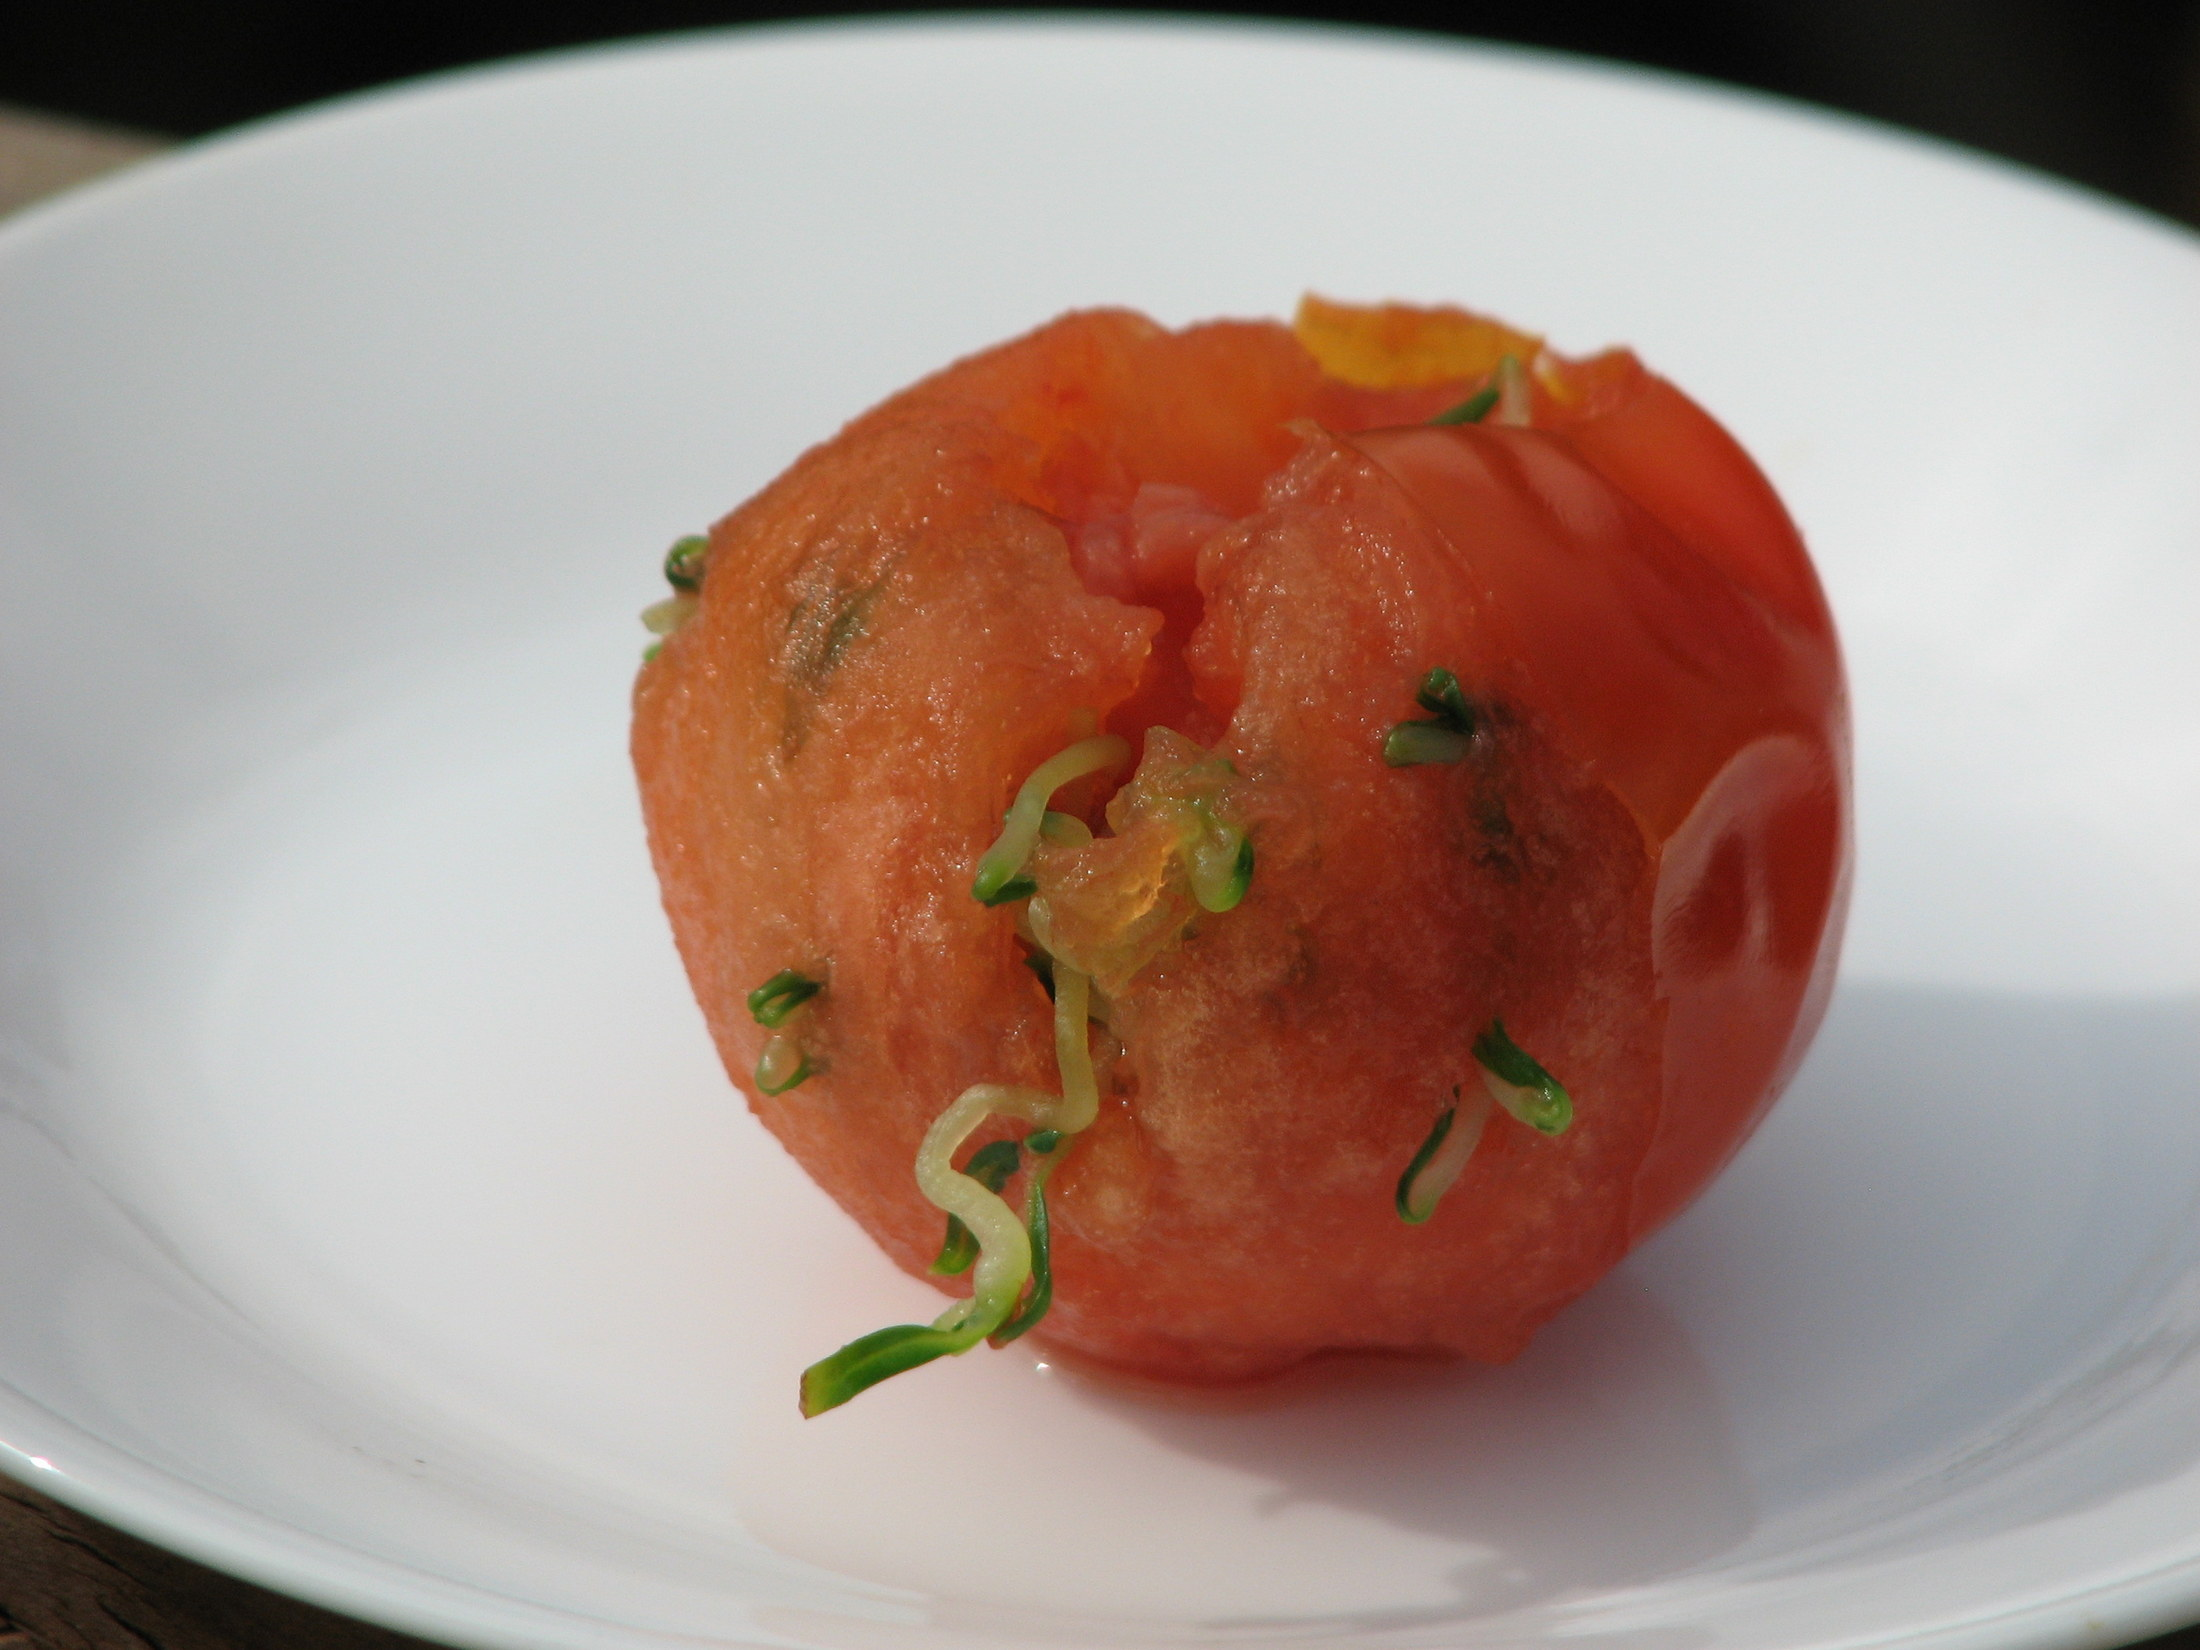 Photo of Tomato with seedlings